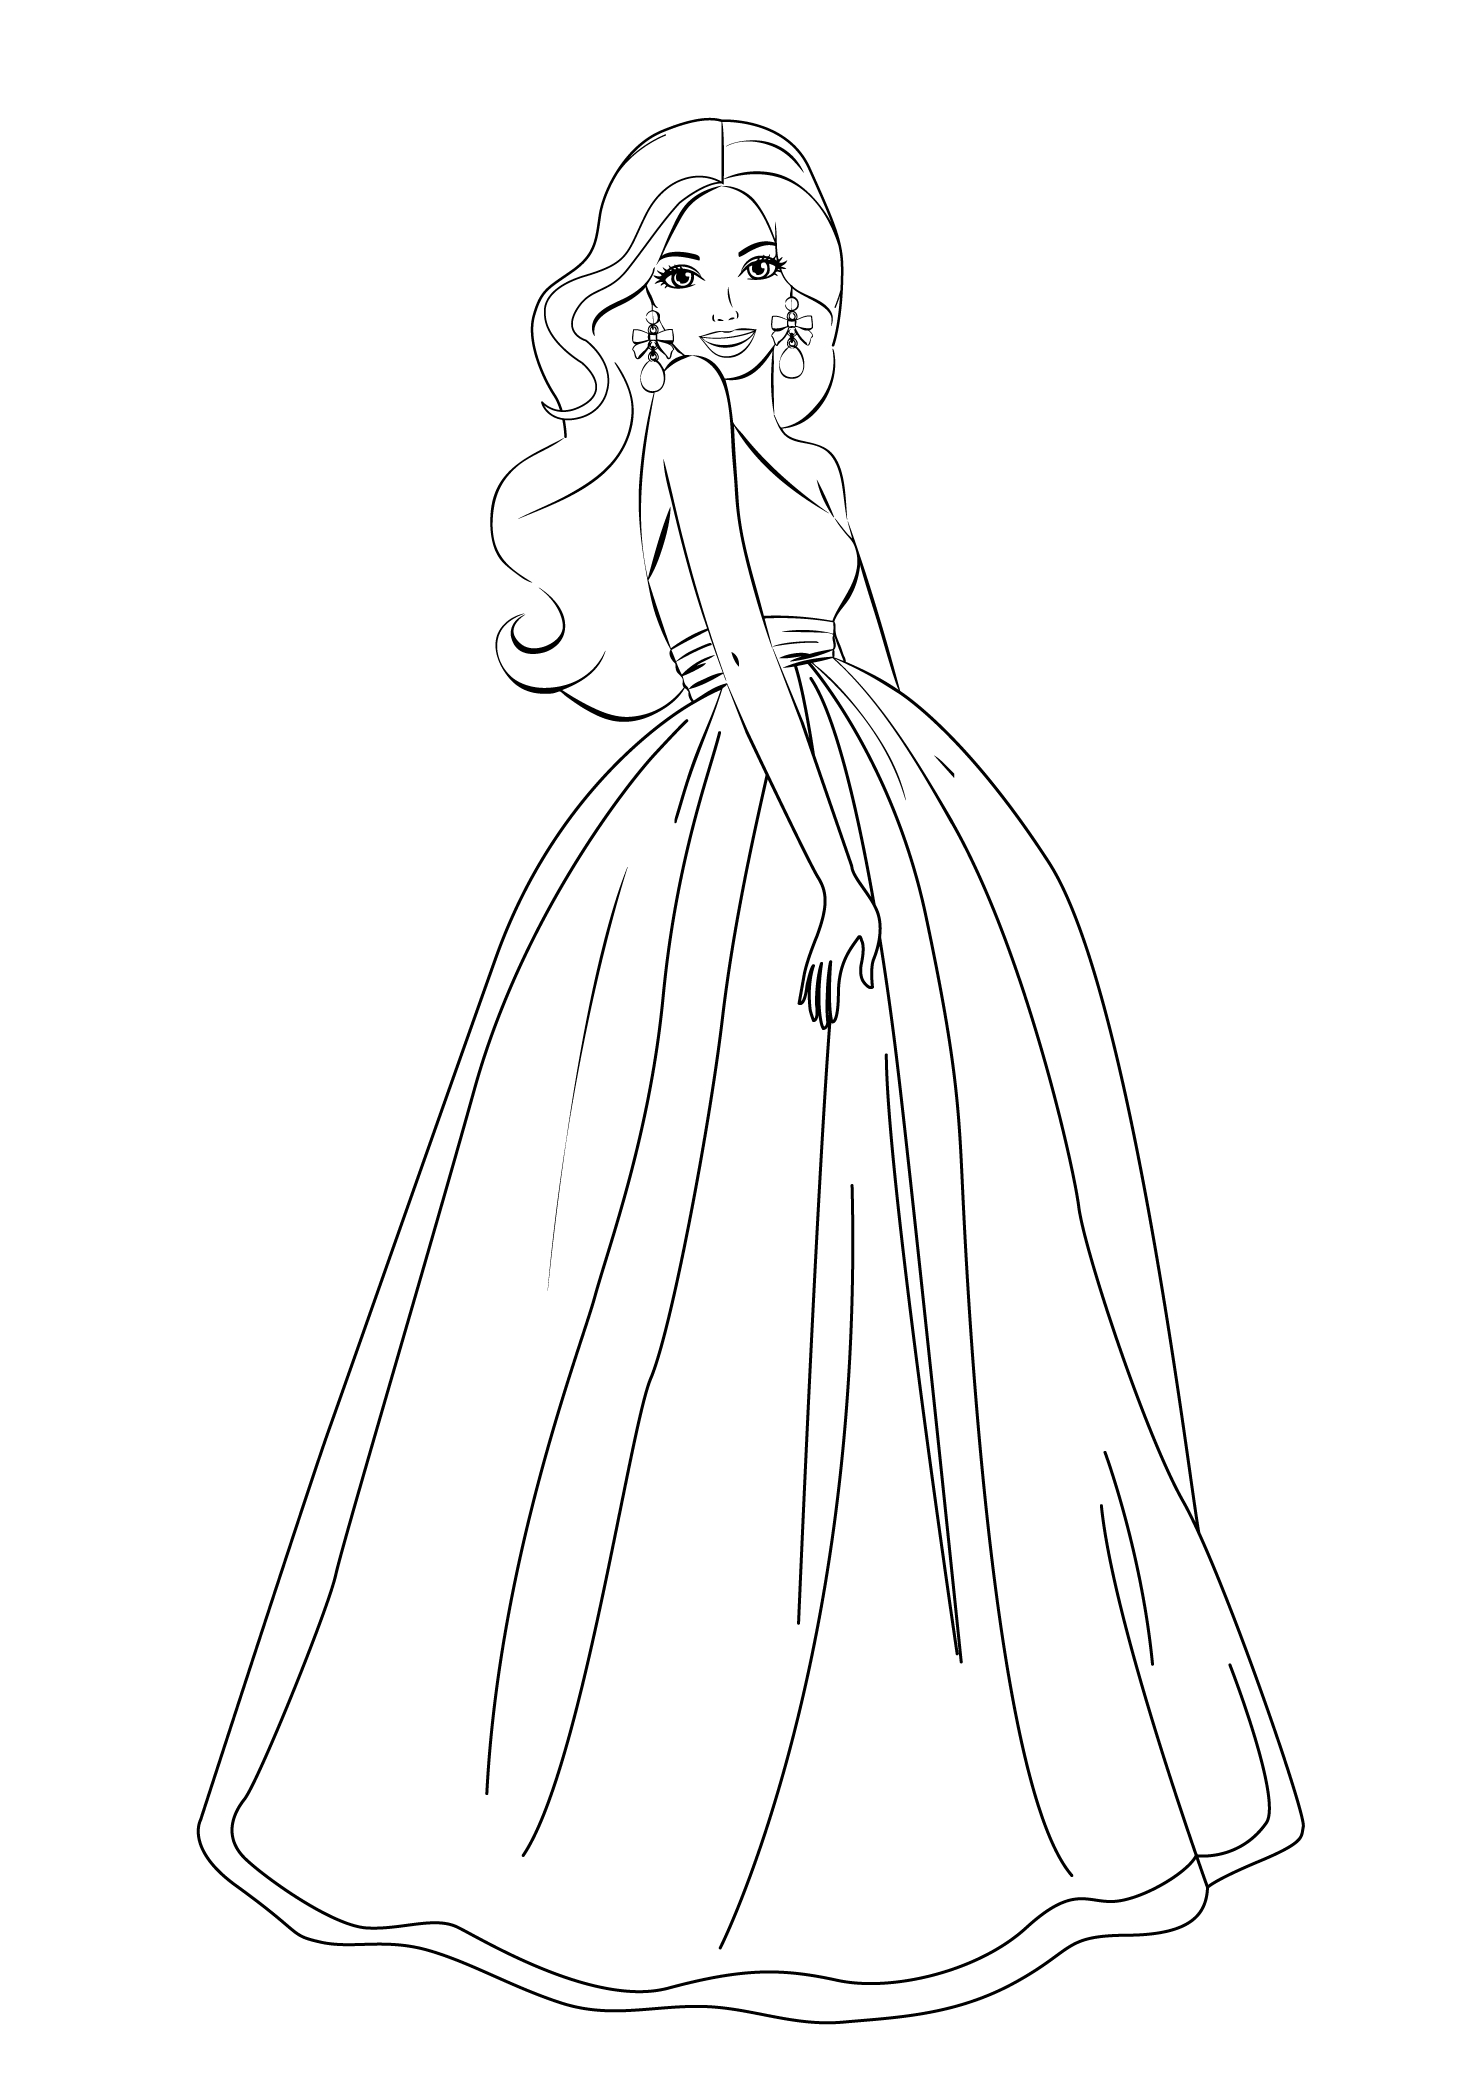 Barbie Coloring Pages For Girls Free Printable   Barbie   Barbie - Free Printable Barbie Coloring Pages